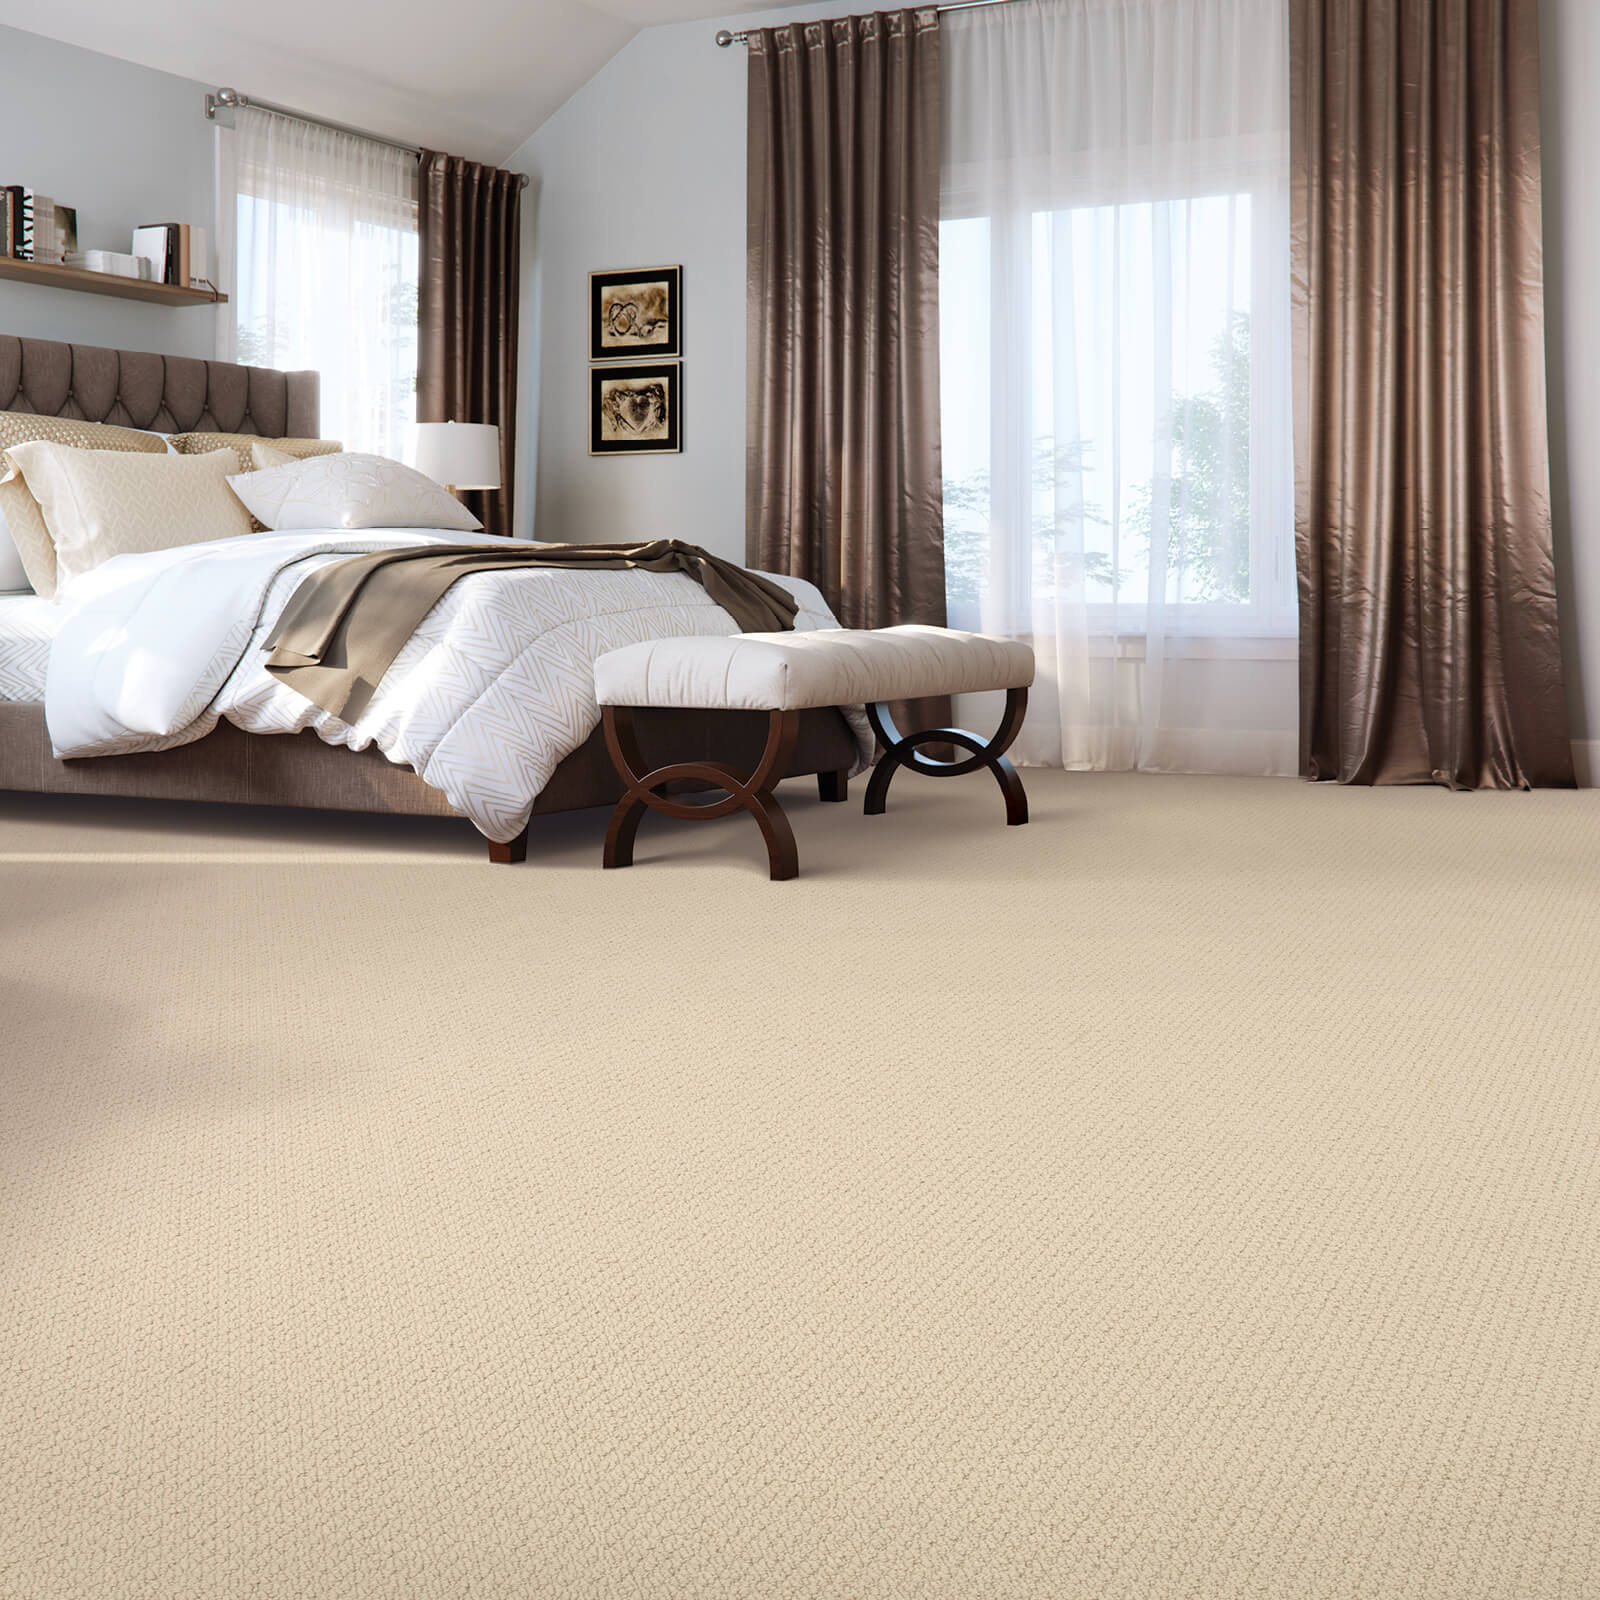 New carpet for bedroom | West Michigan Carpet Center